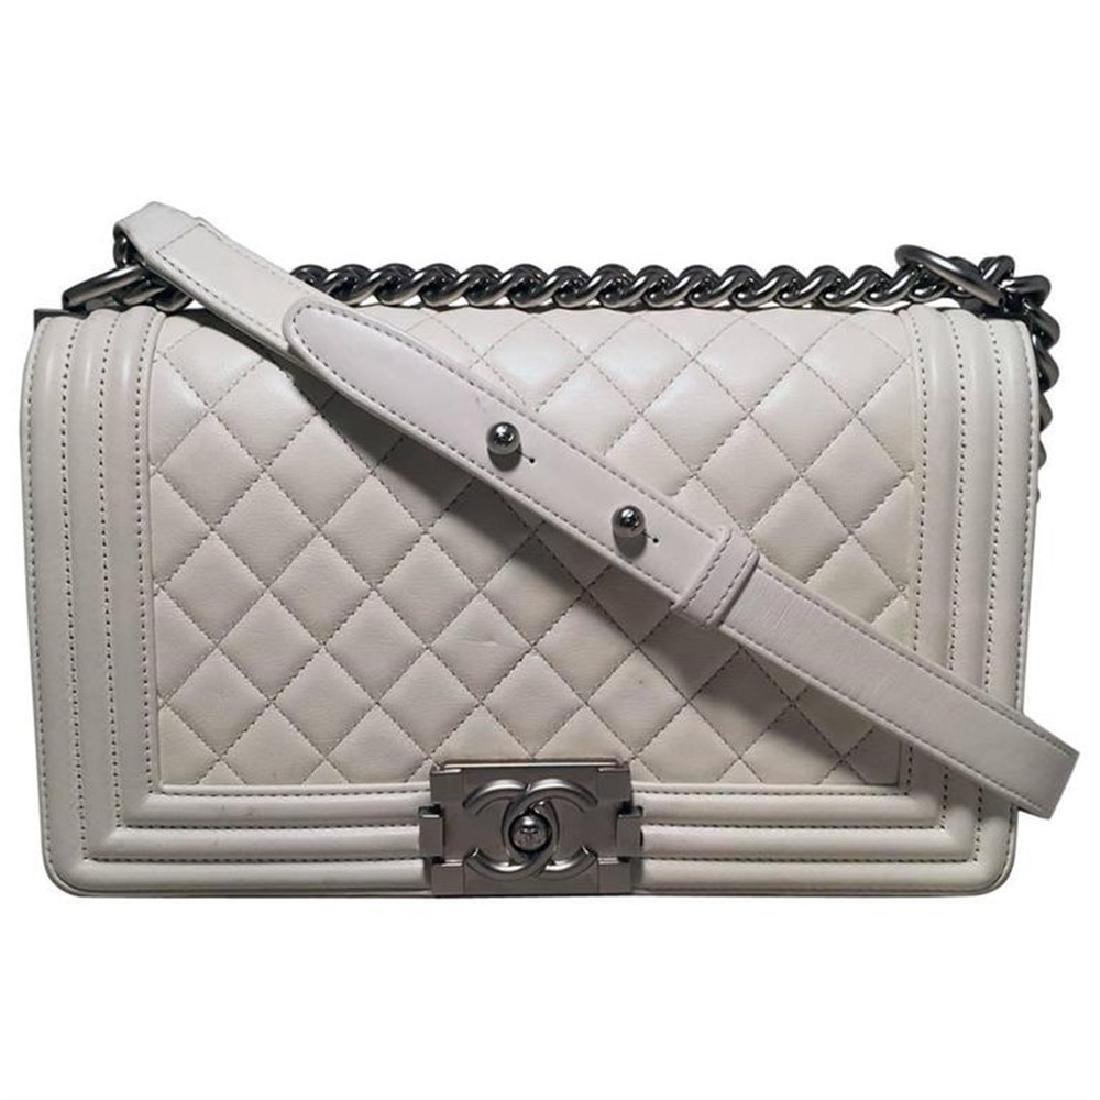 Chanel White Quilted Le Boy Classic Flap  Shoulder Bag